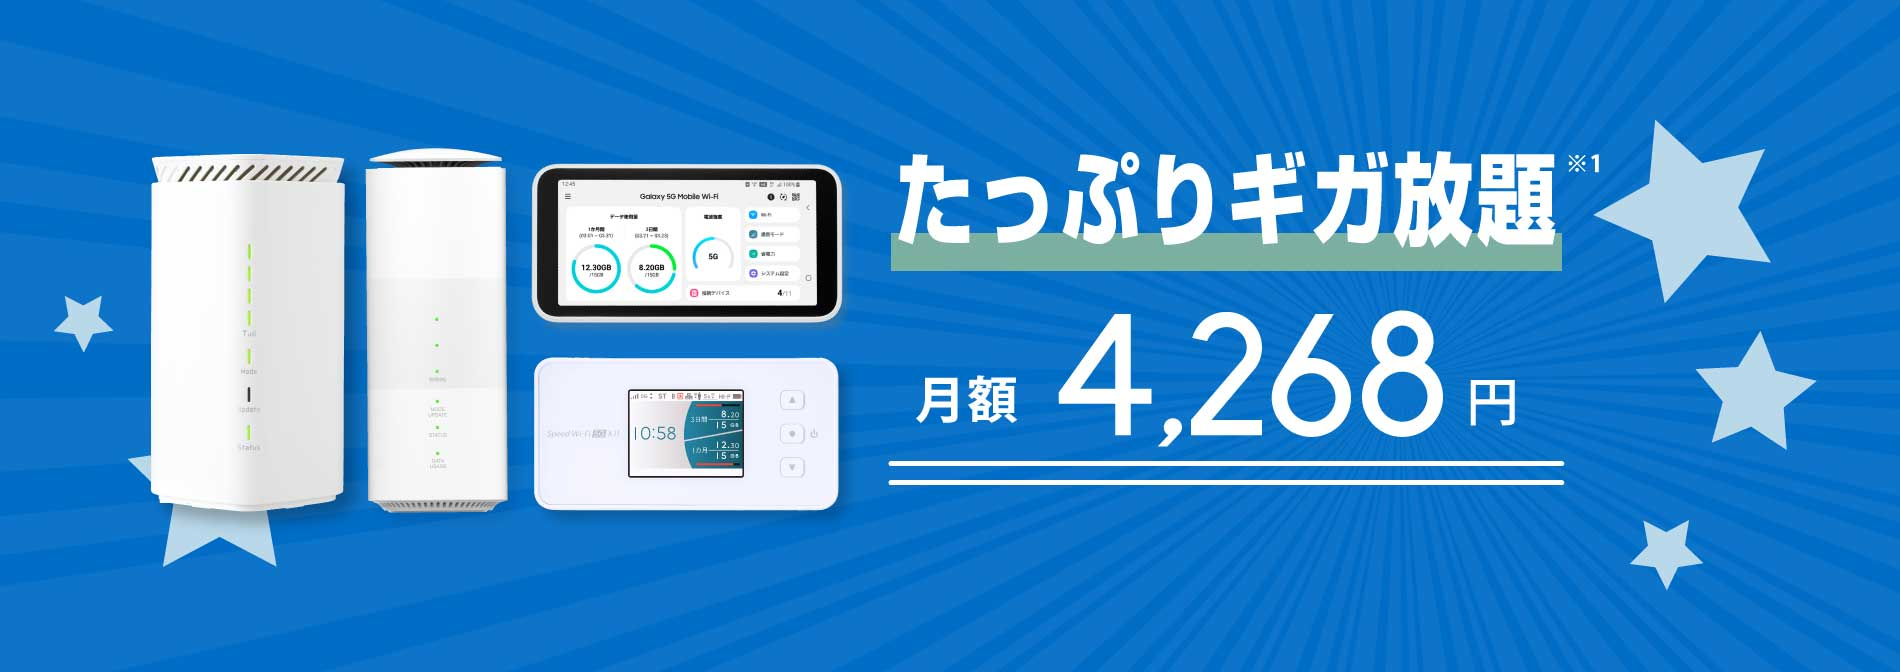 WiMAX 5g 料金プラン